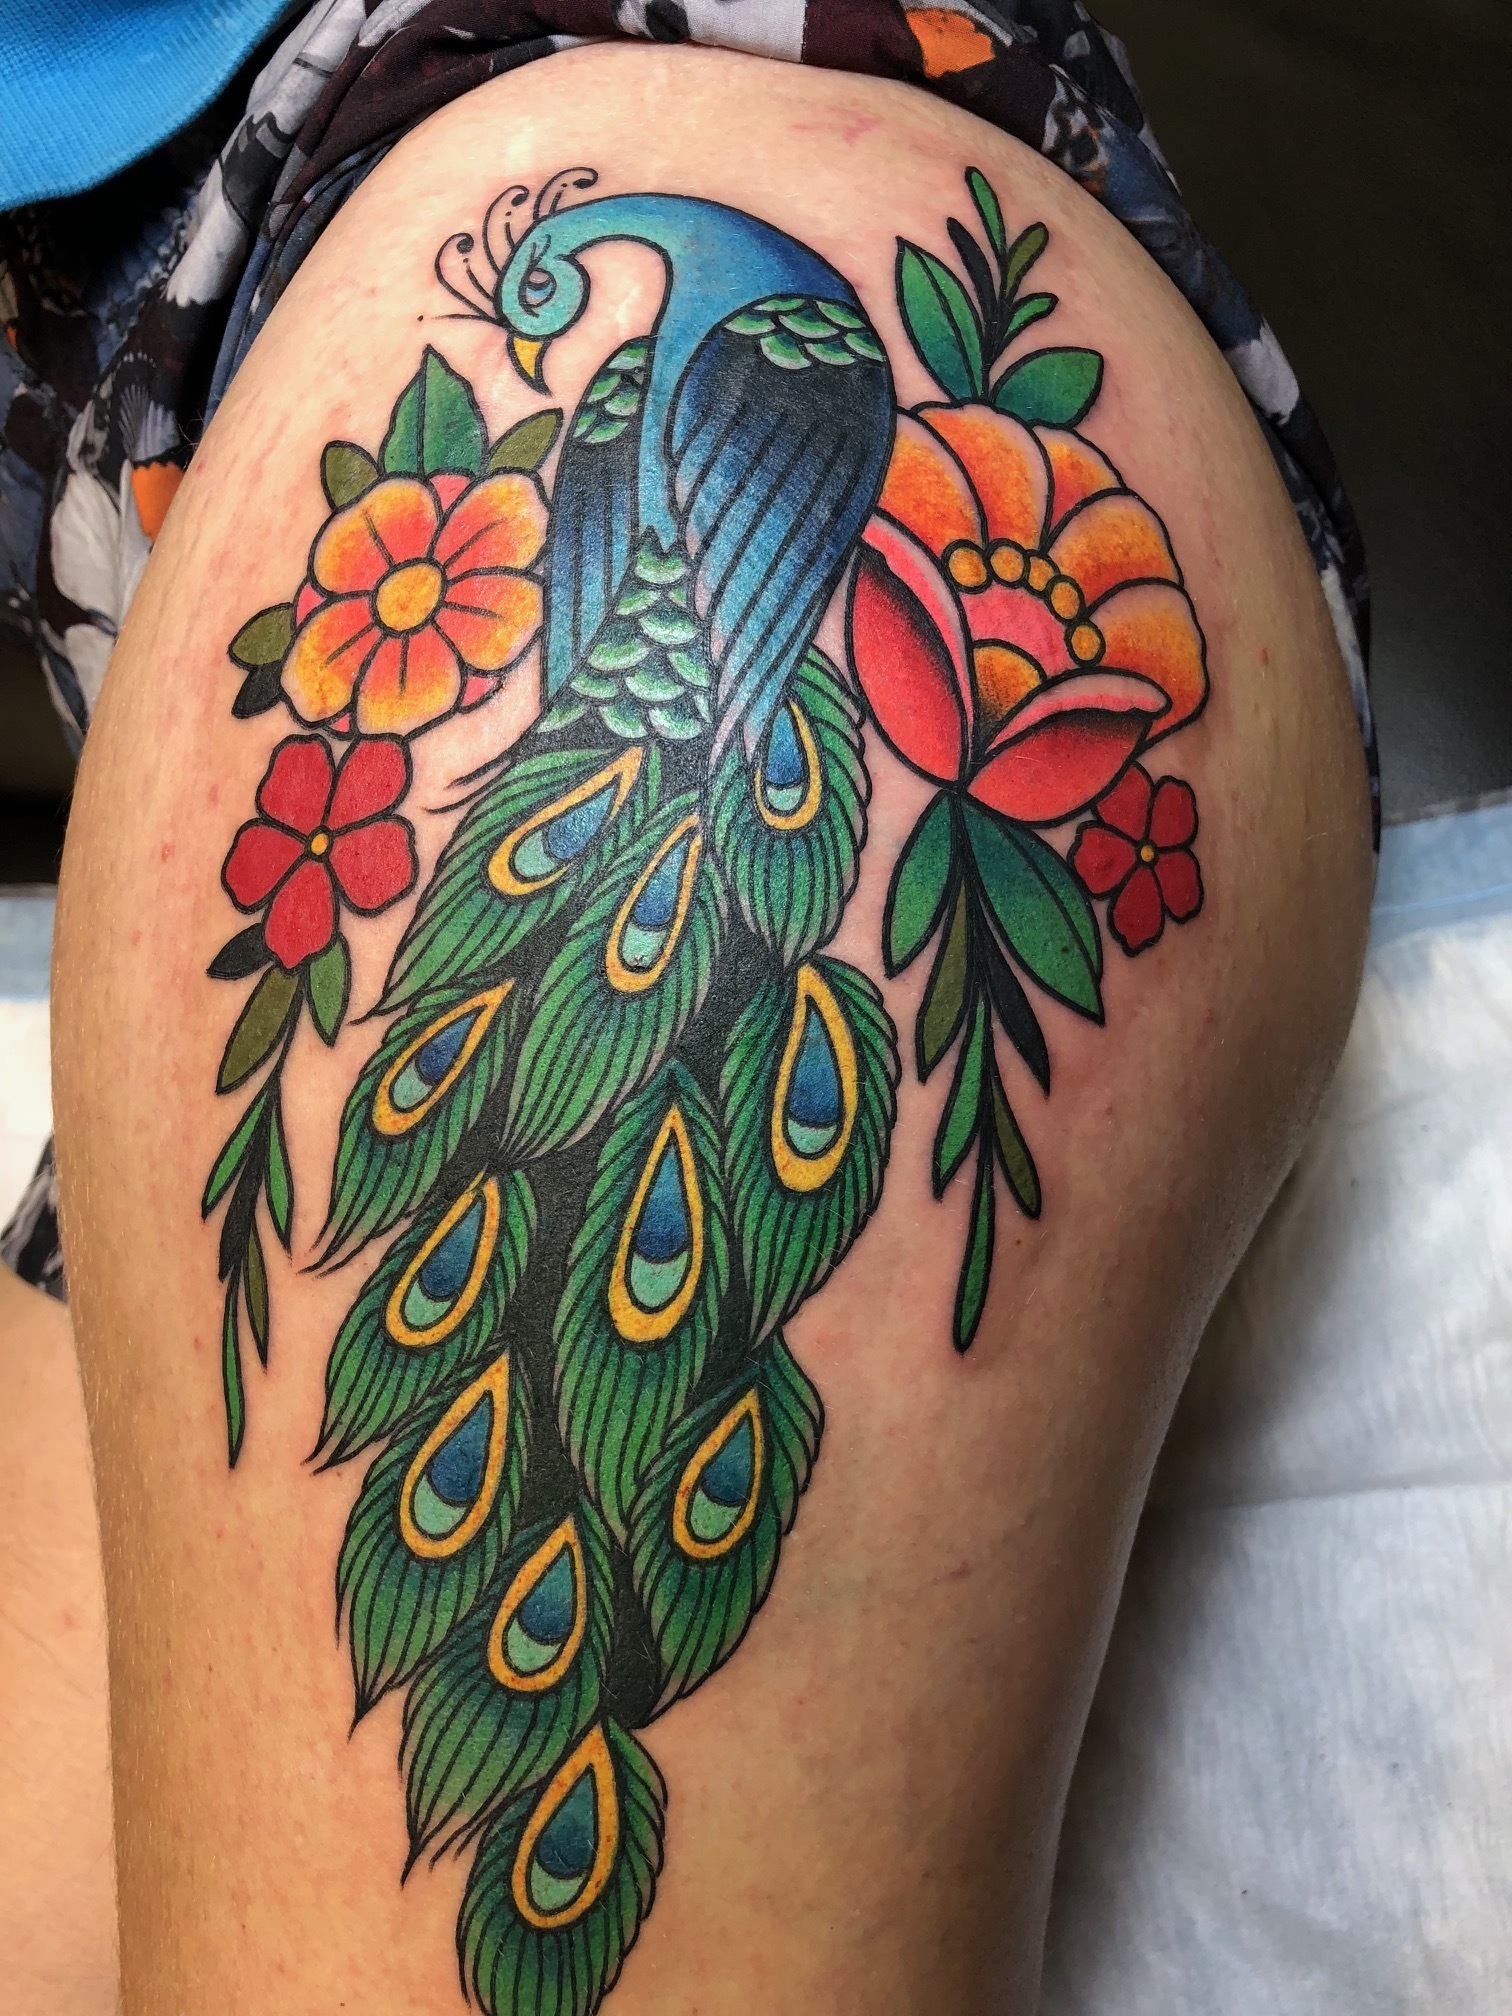 Completed Peacock on my left thigh